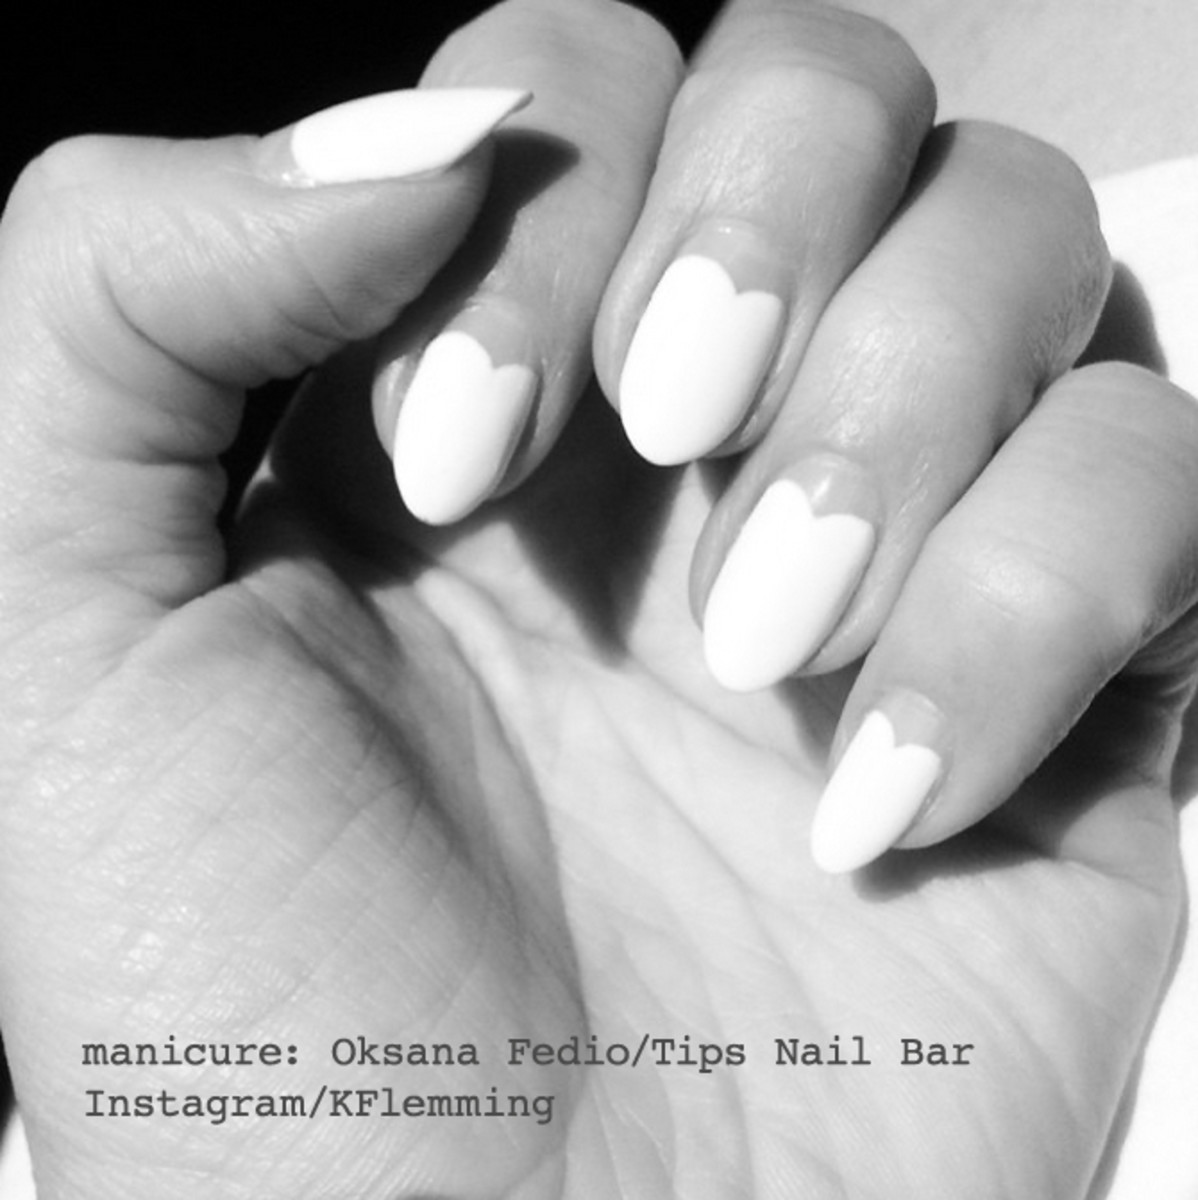 the scalloped manicure by Oksana Fedio_Instagram Katherine Flemming Elle Canada